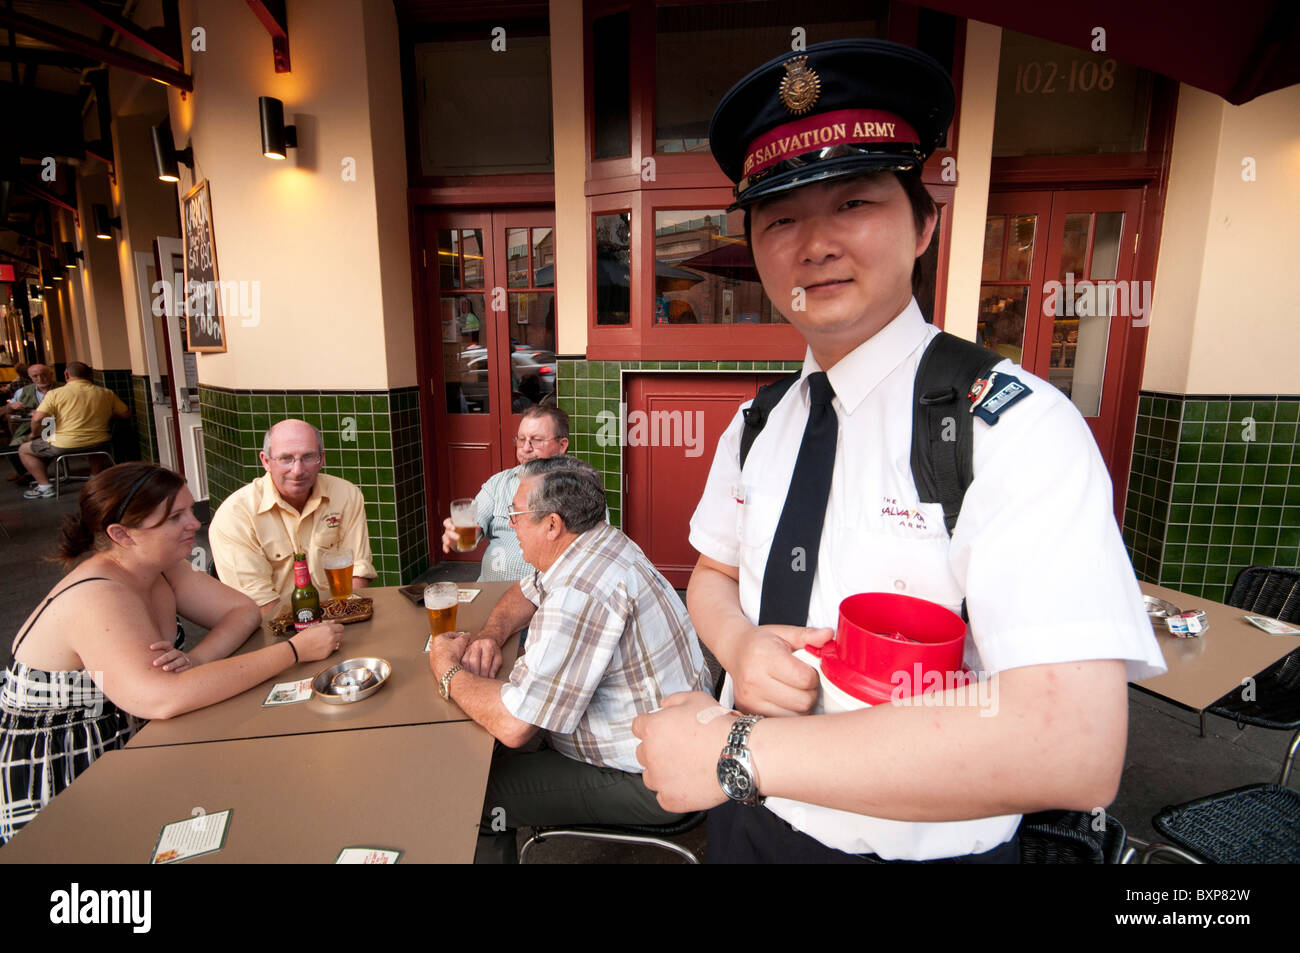 A Chinese Salvation Army member collecting money in the pubs of Chinatown in Sydney Australia - Stock Image